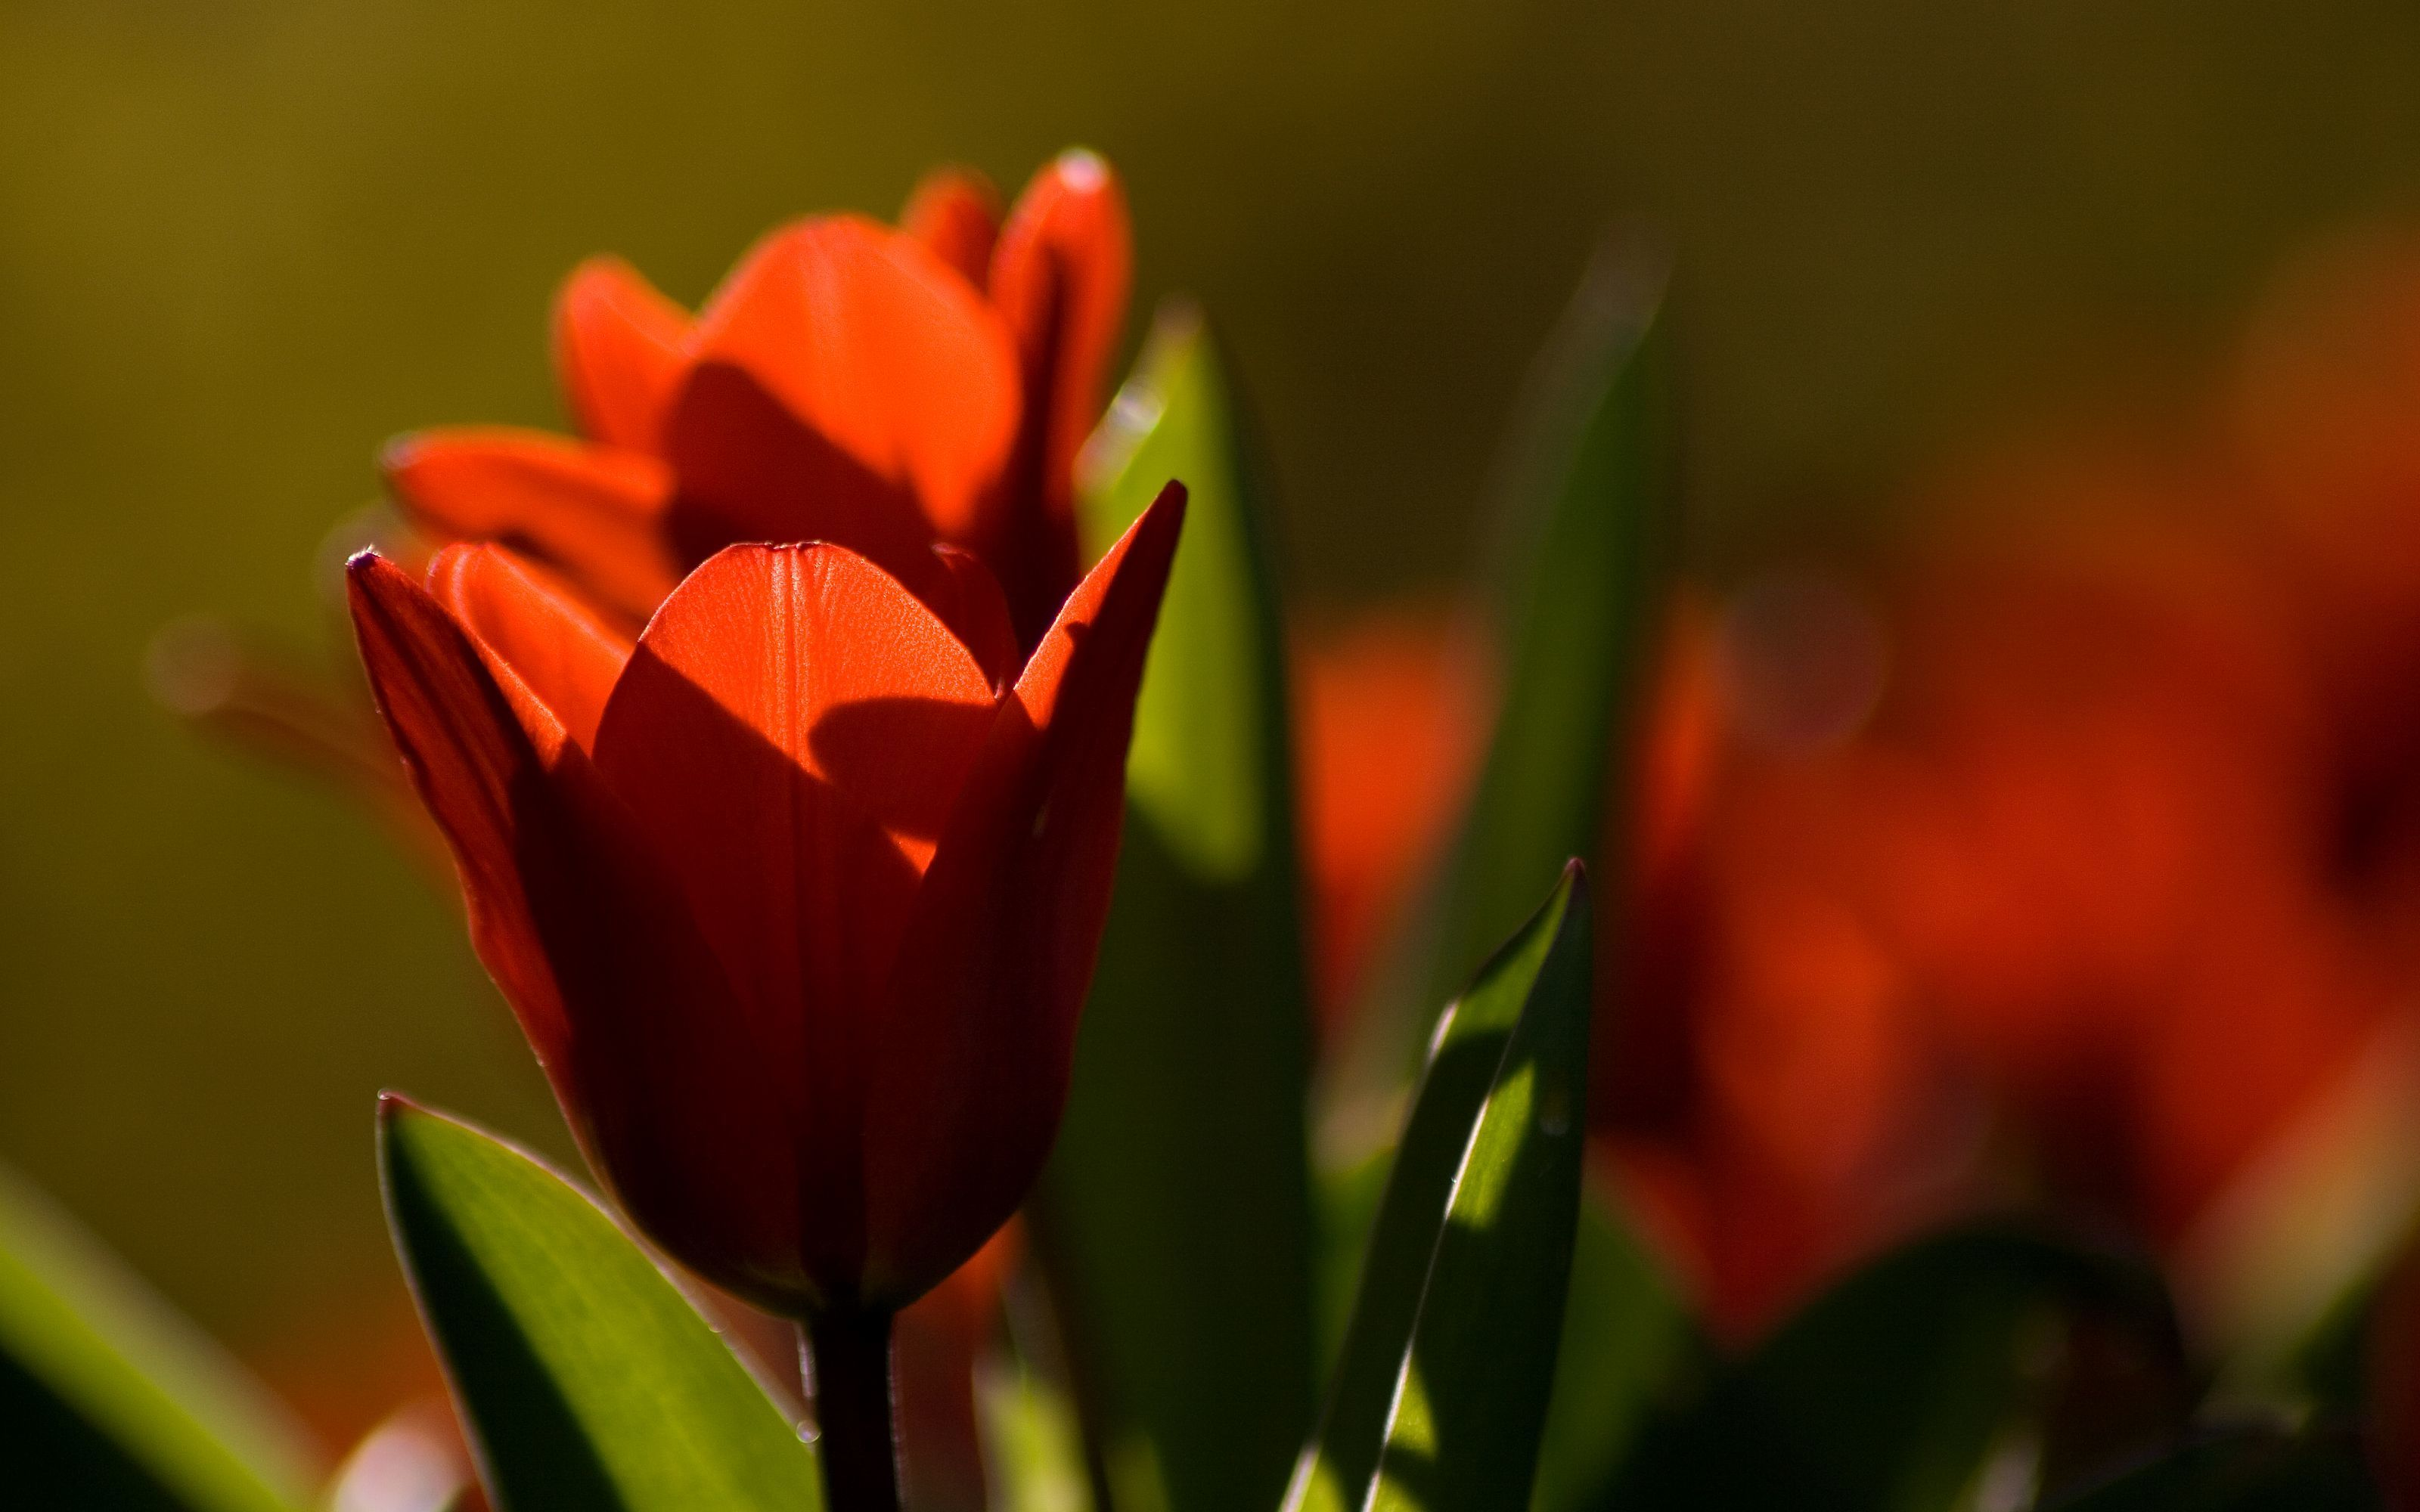 Flowers tulips red flower HD Wallpaper